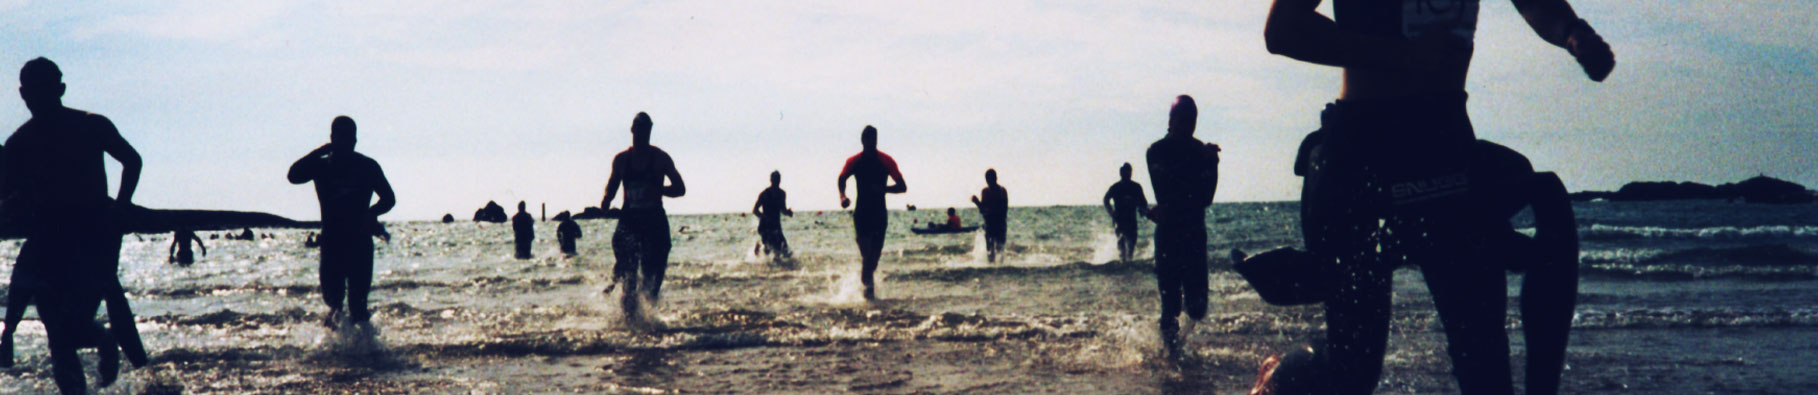 Triathlon event by Shoreline in Bude, Cornwall